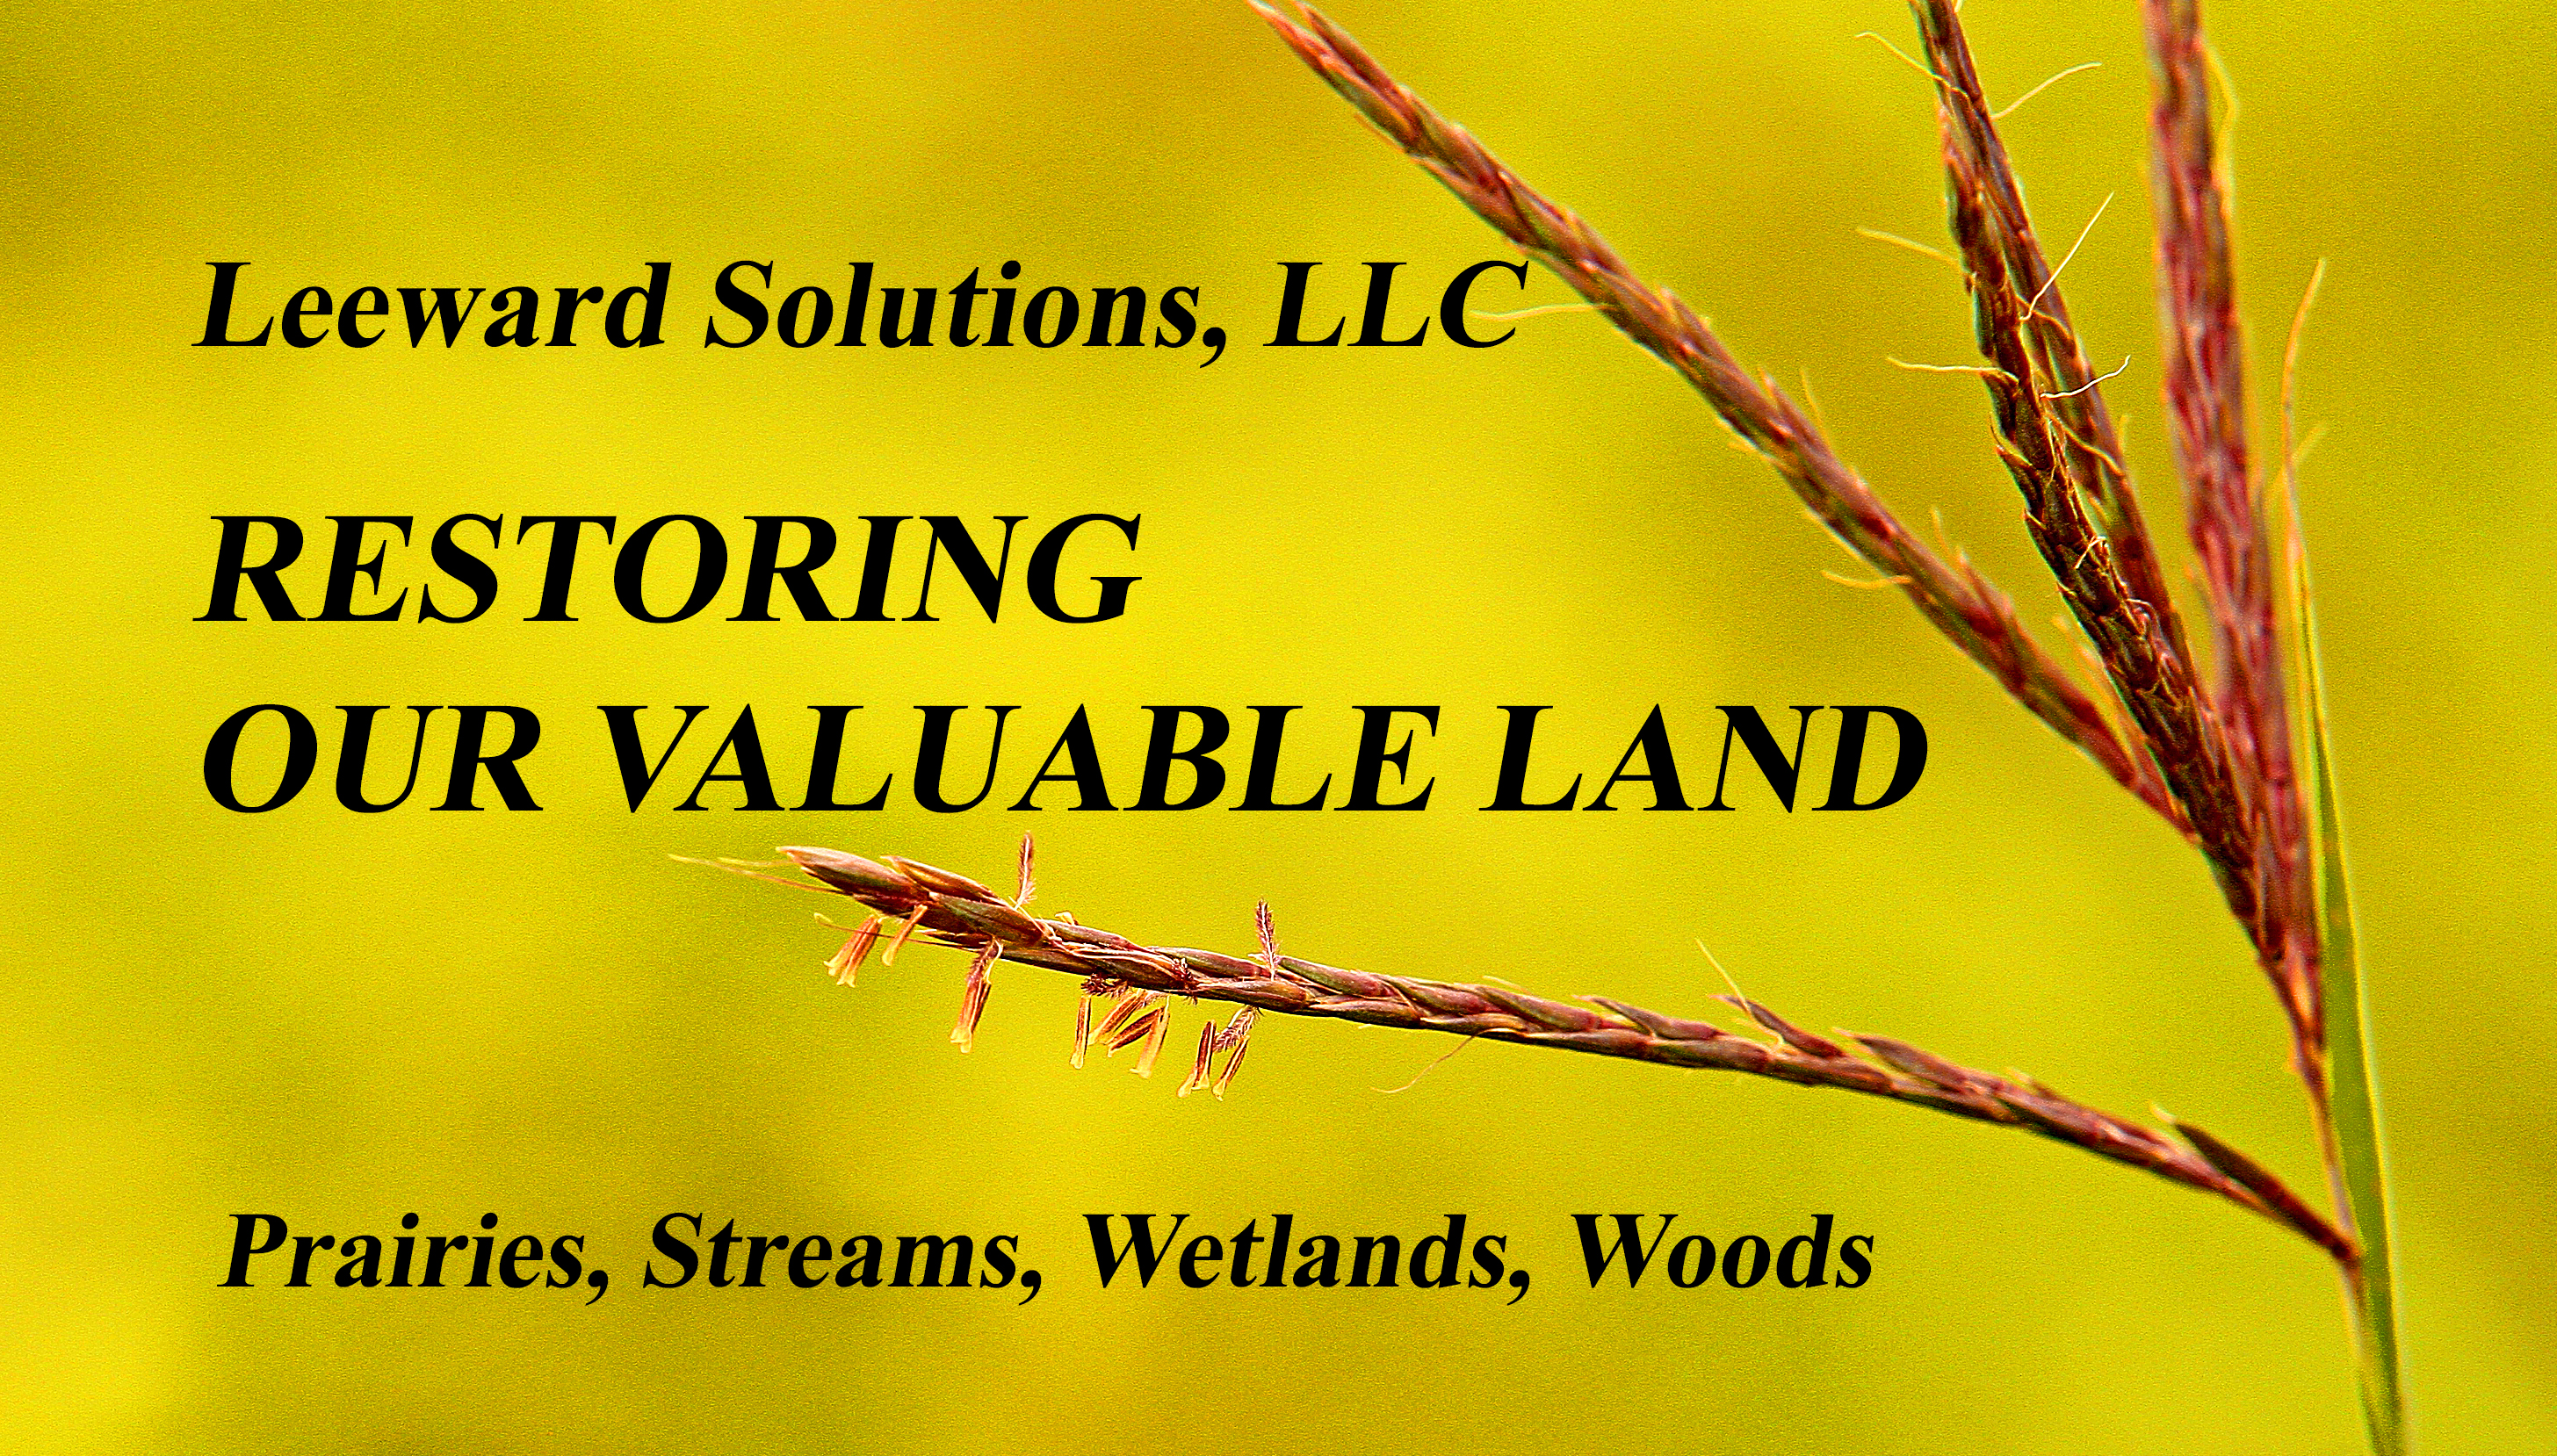 LEEWARD SOLUTIONS, LLC